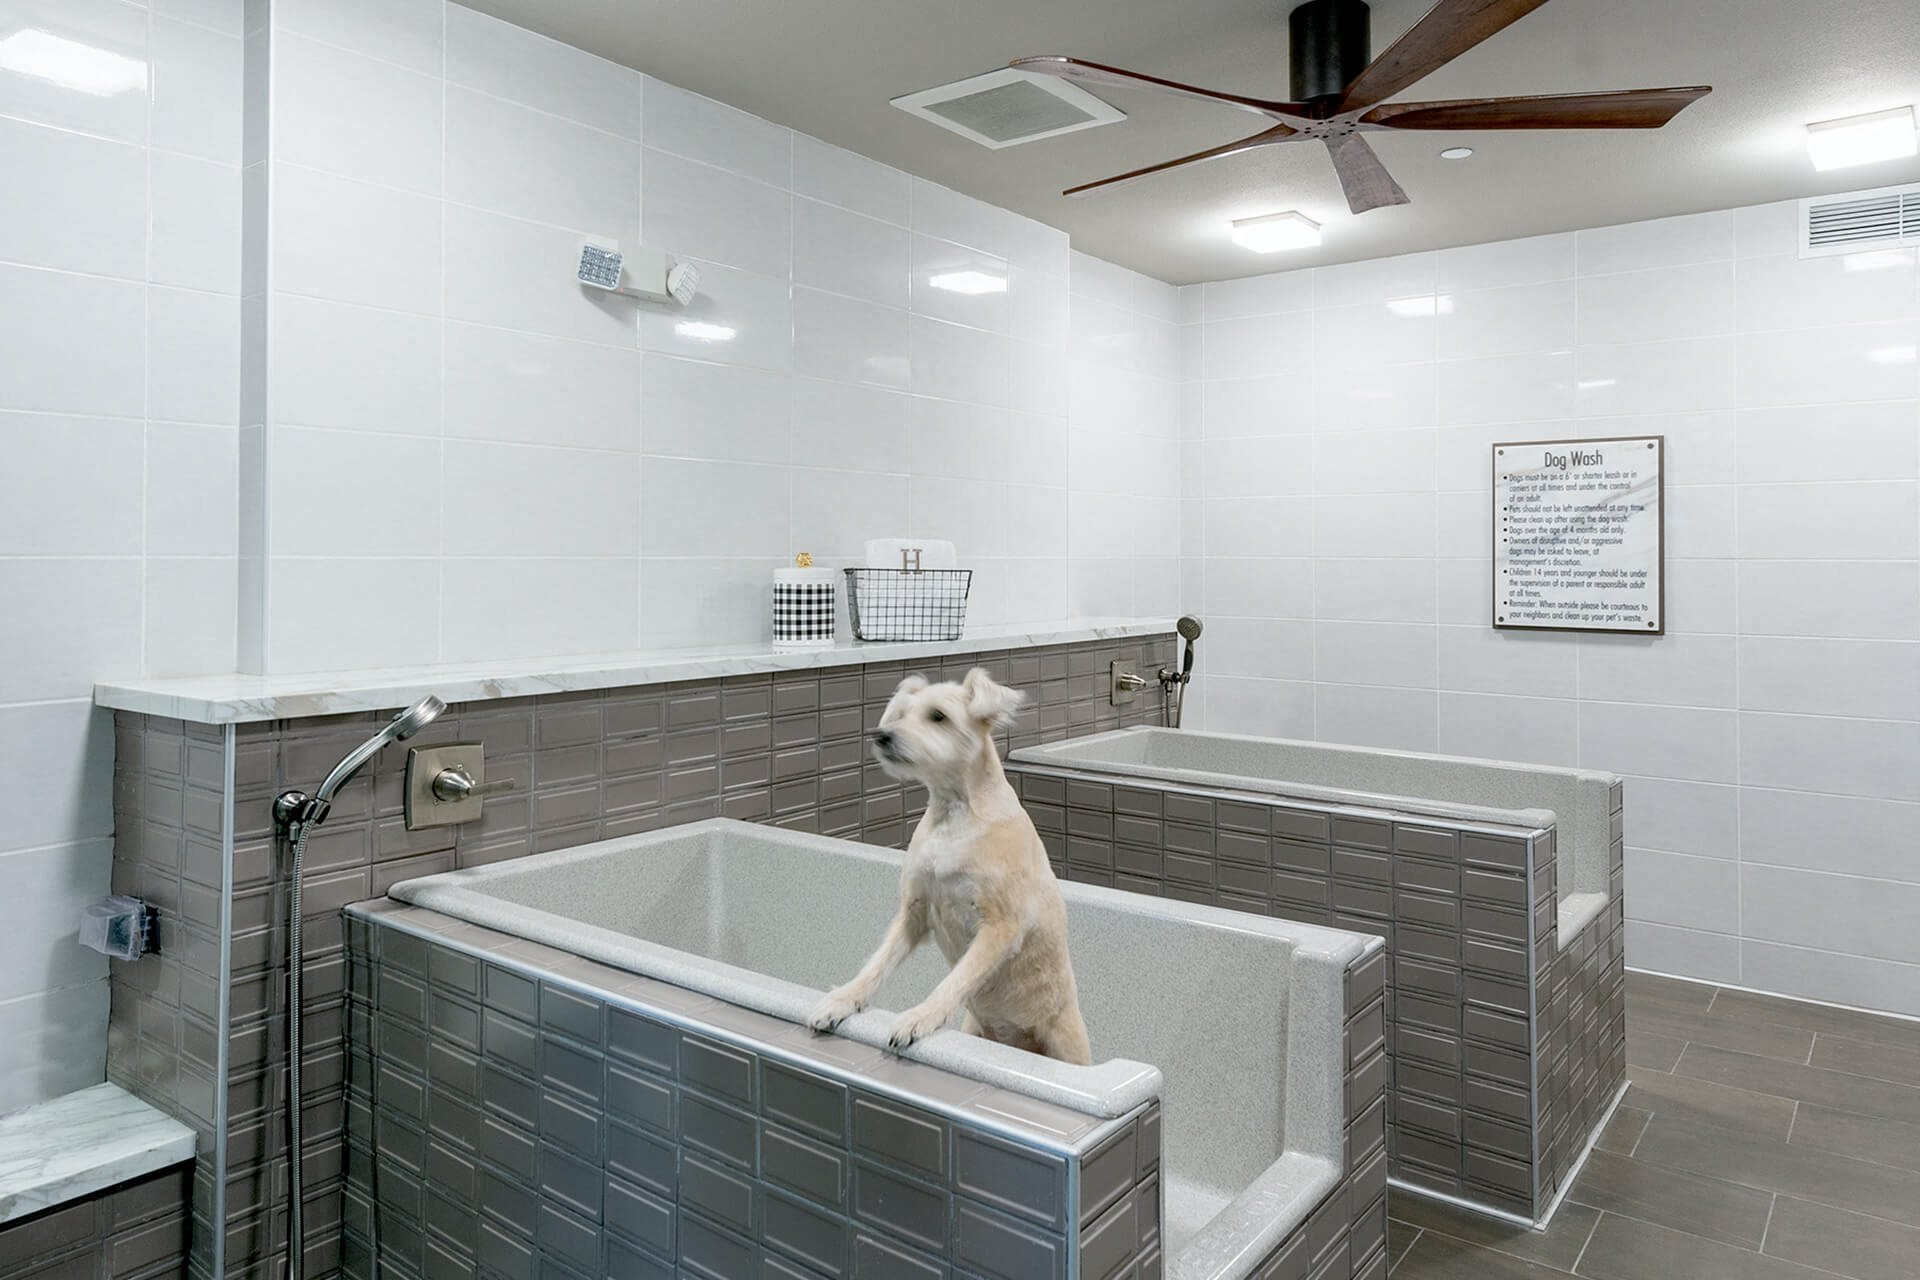 Pet washing station at Cannery Park by Windsor, California, 95112